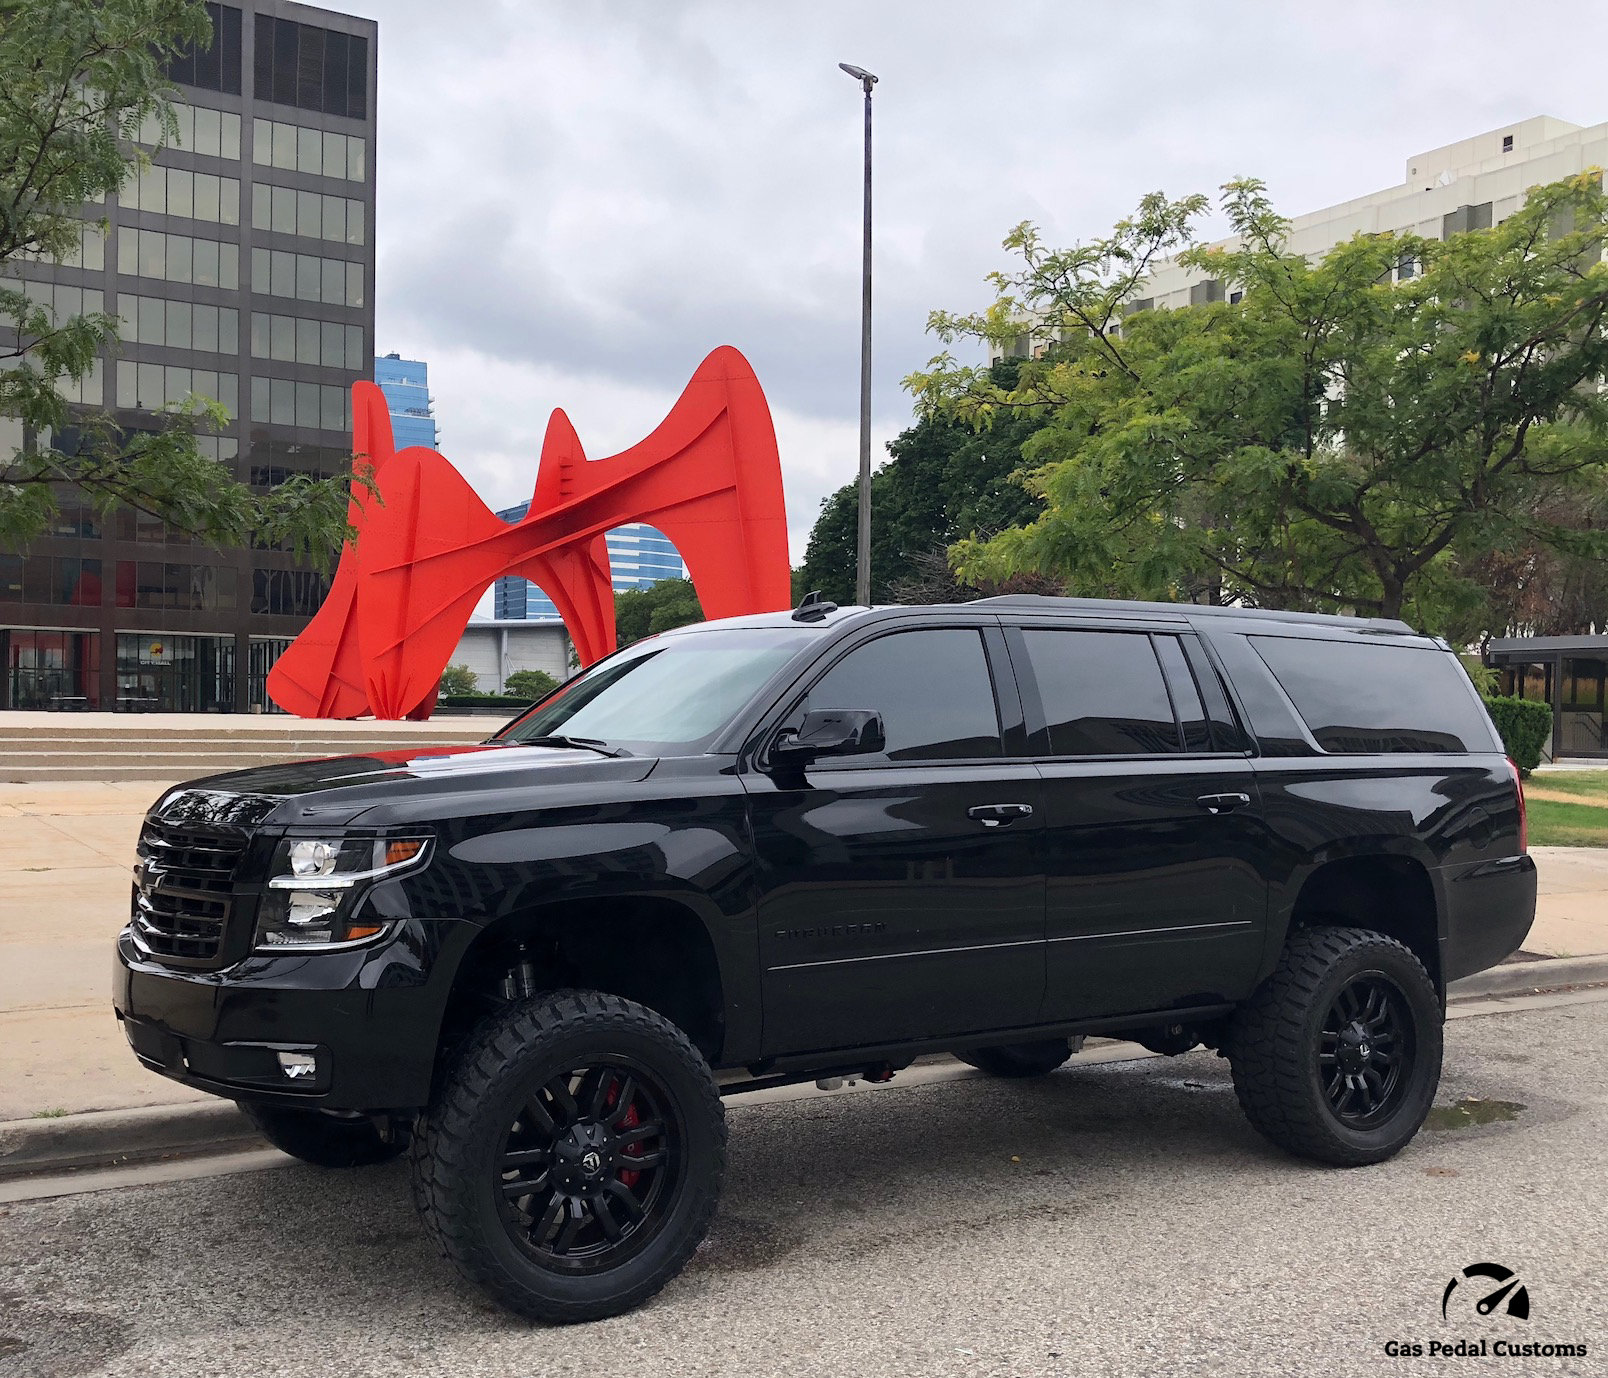 2018 Suburban Duramax >> 6 6l Duramax Lml 2018 Suburban 3500hd Conversion By Gas Pedal Customs